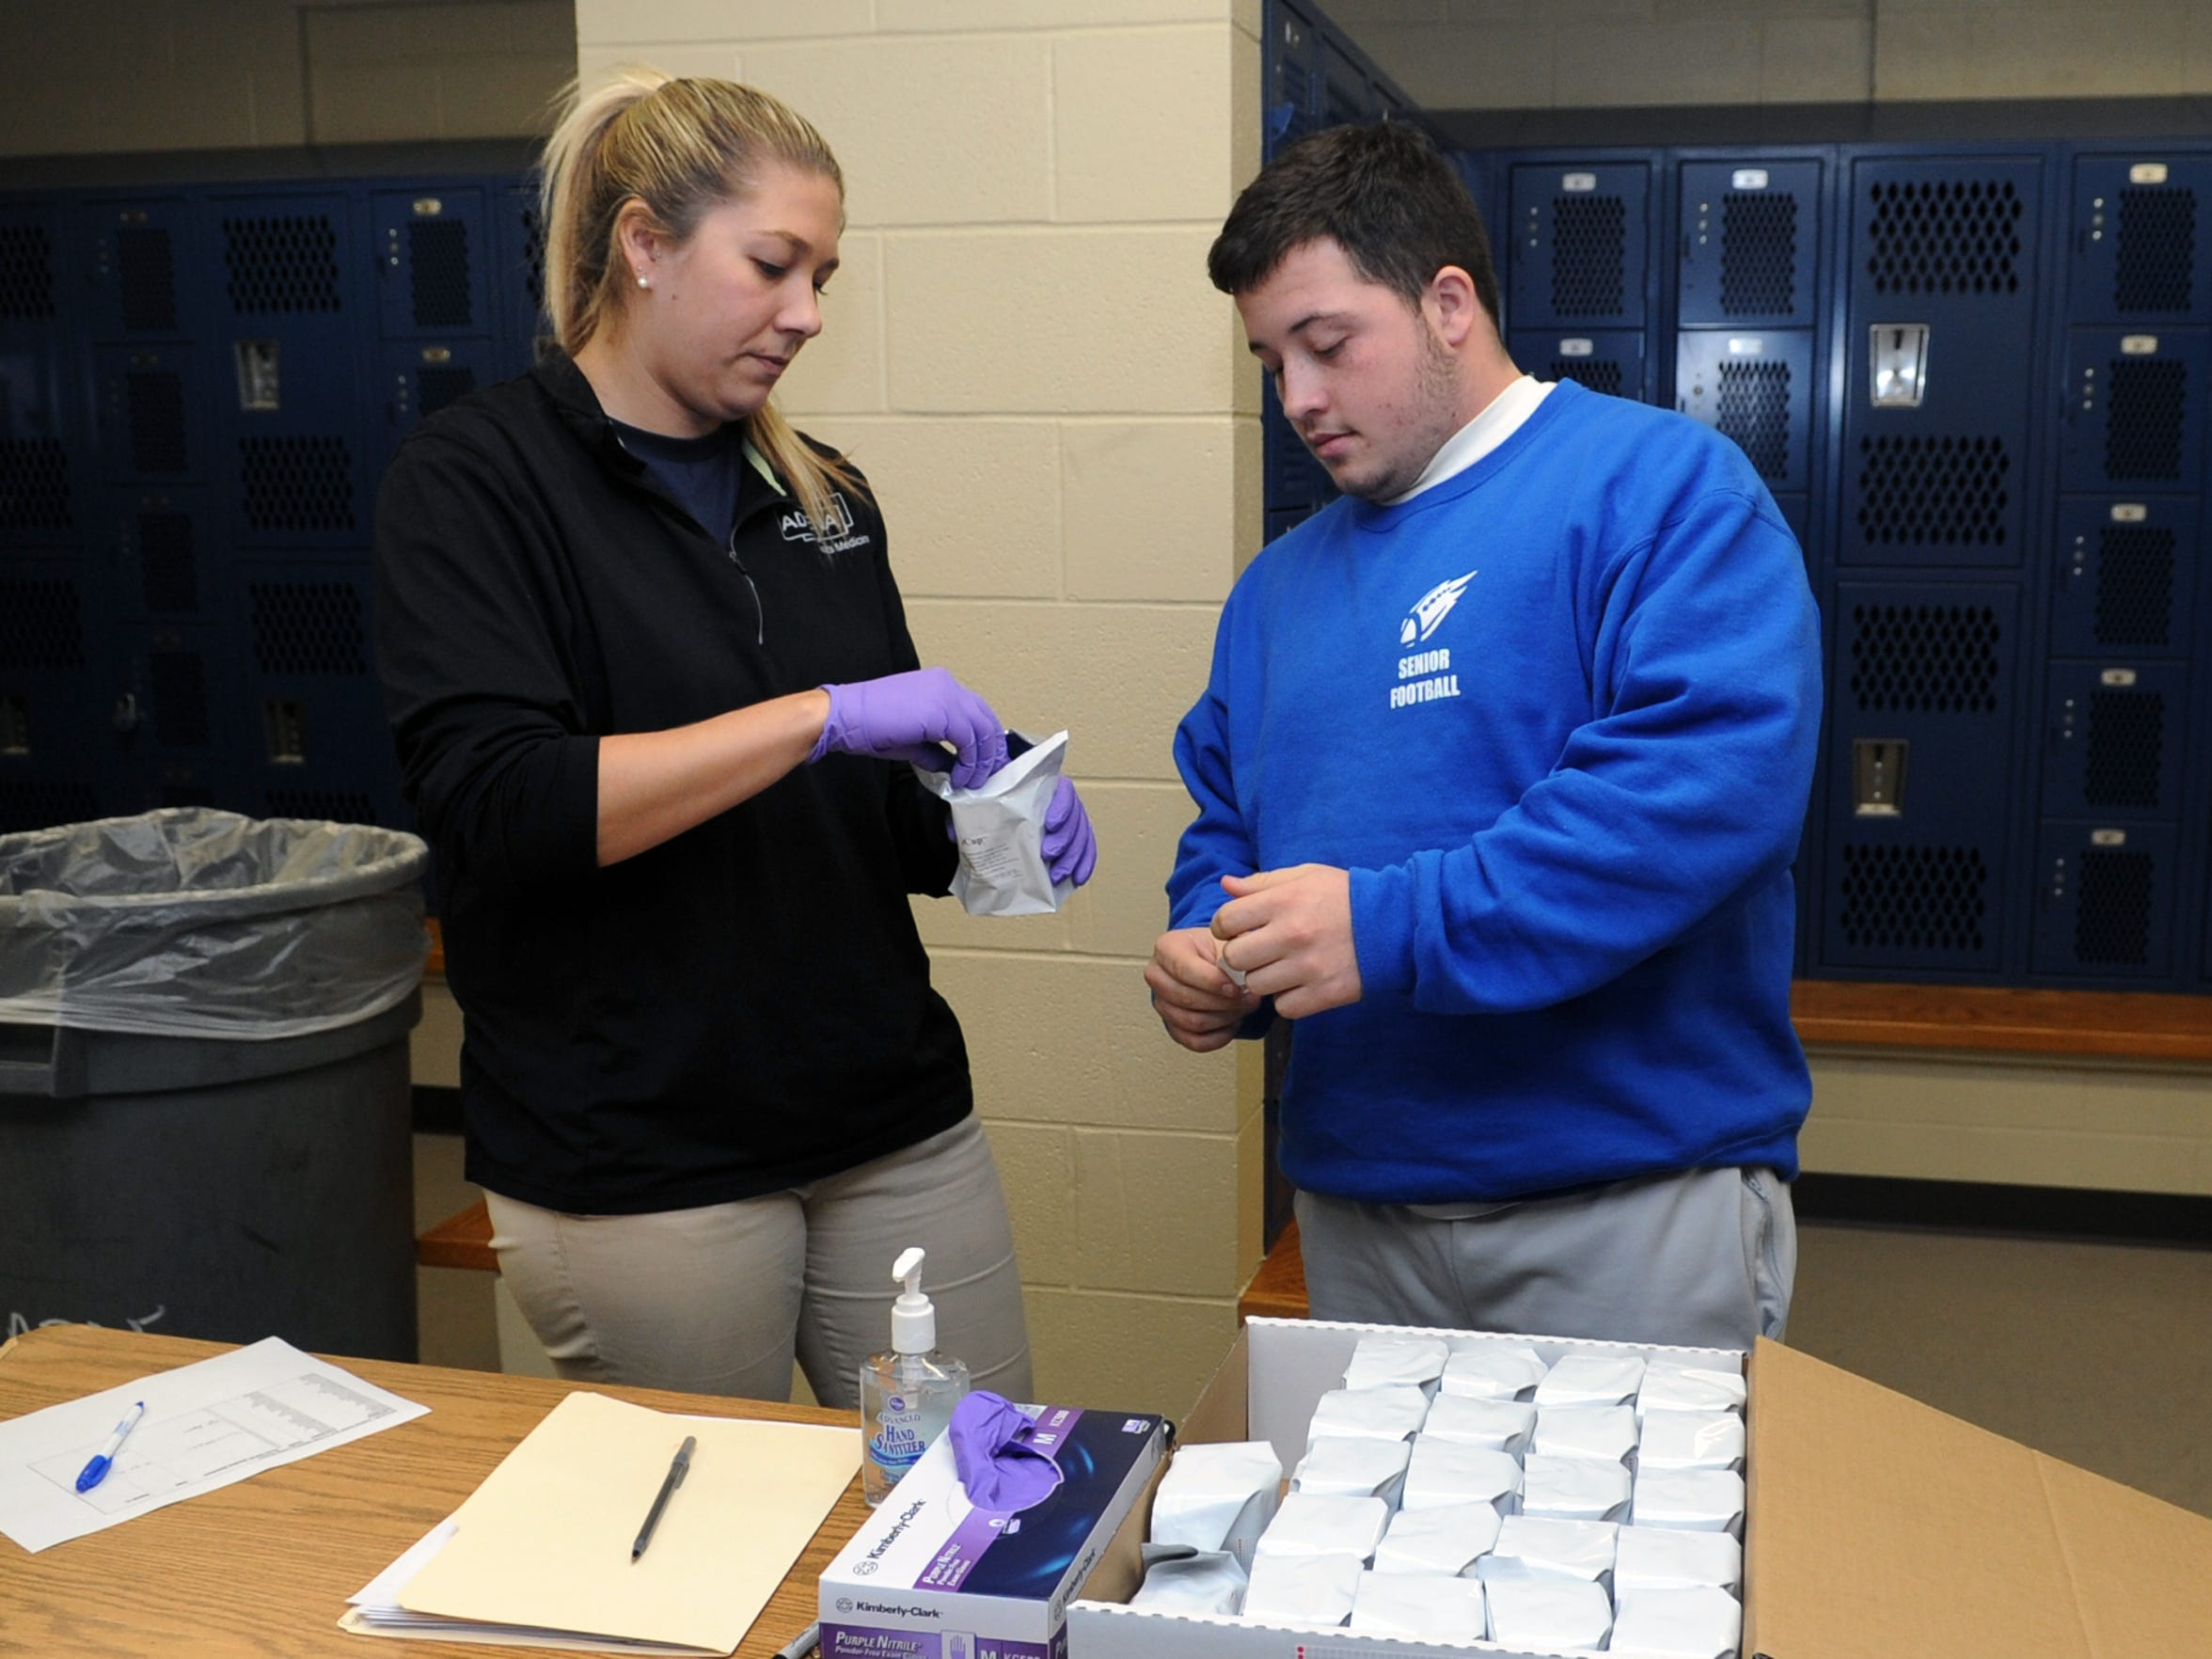 Leo Woods prepares to take a drug test with assistance from Andrew Gobel, athletic trainer, Wednesday, Dec. 16, 2015, at Chillicothe High School as part of the Keys to Success program.